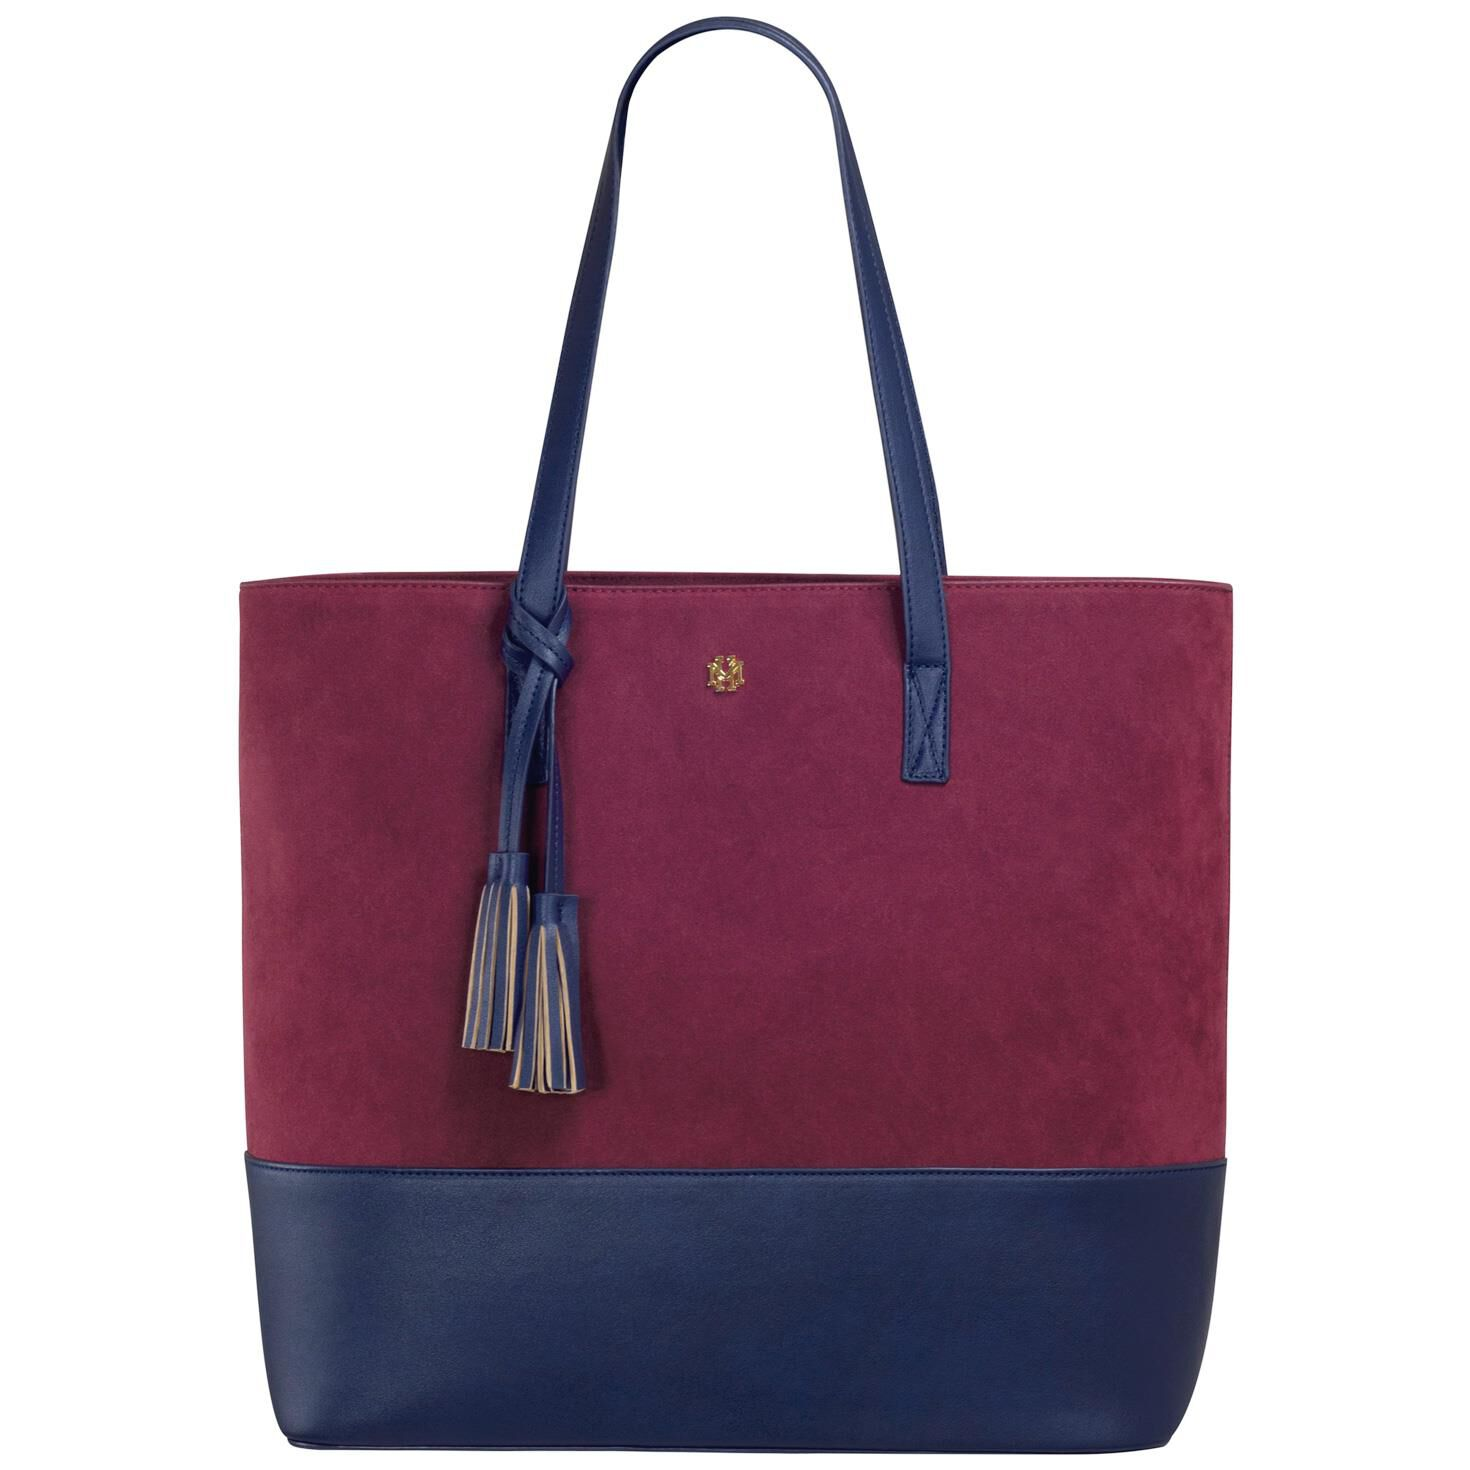 VIDA Statement Bag - Rush Hour by VIDA B06Fft